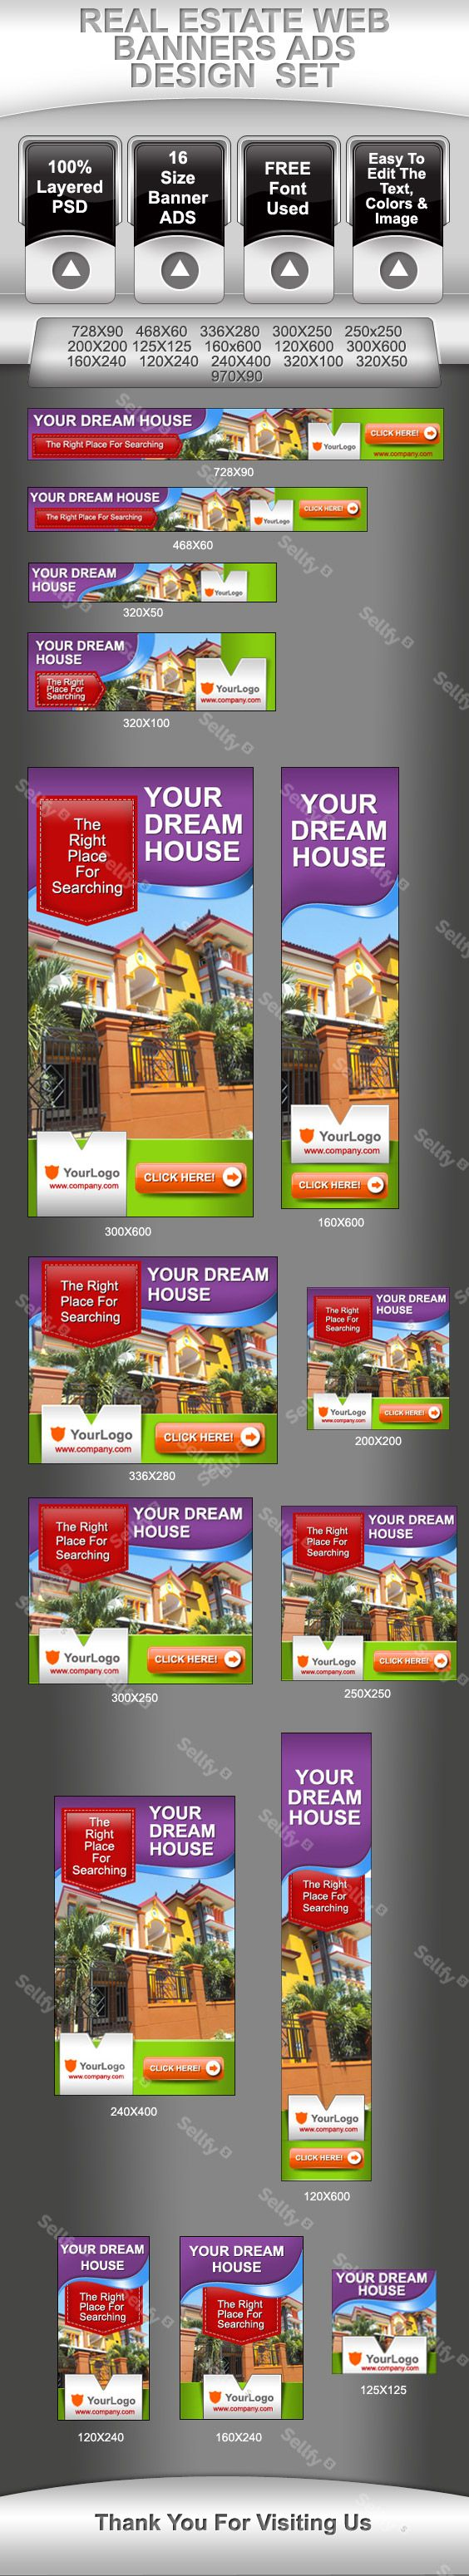 real estate advertisement template